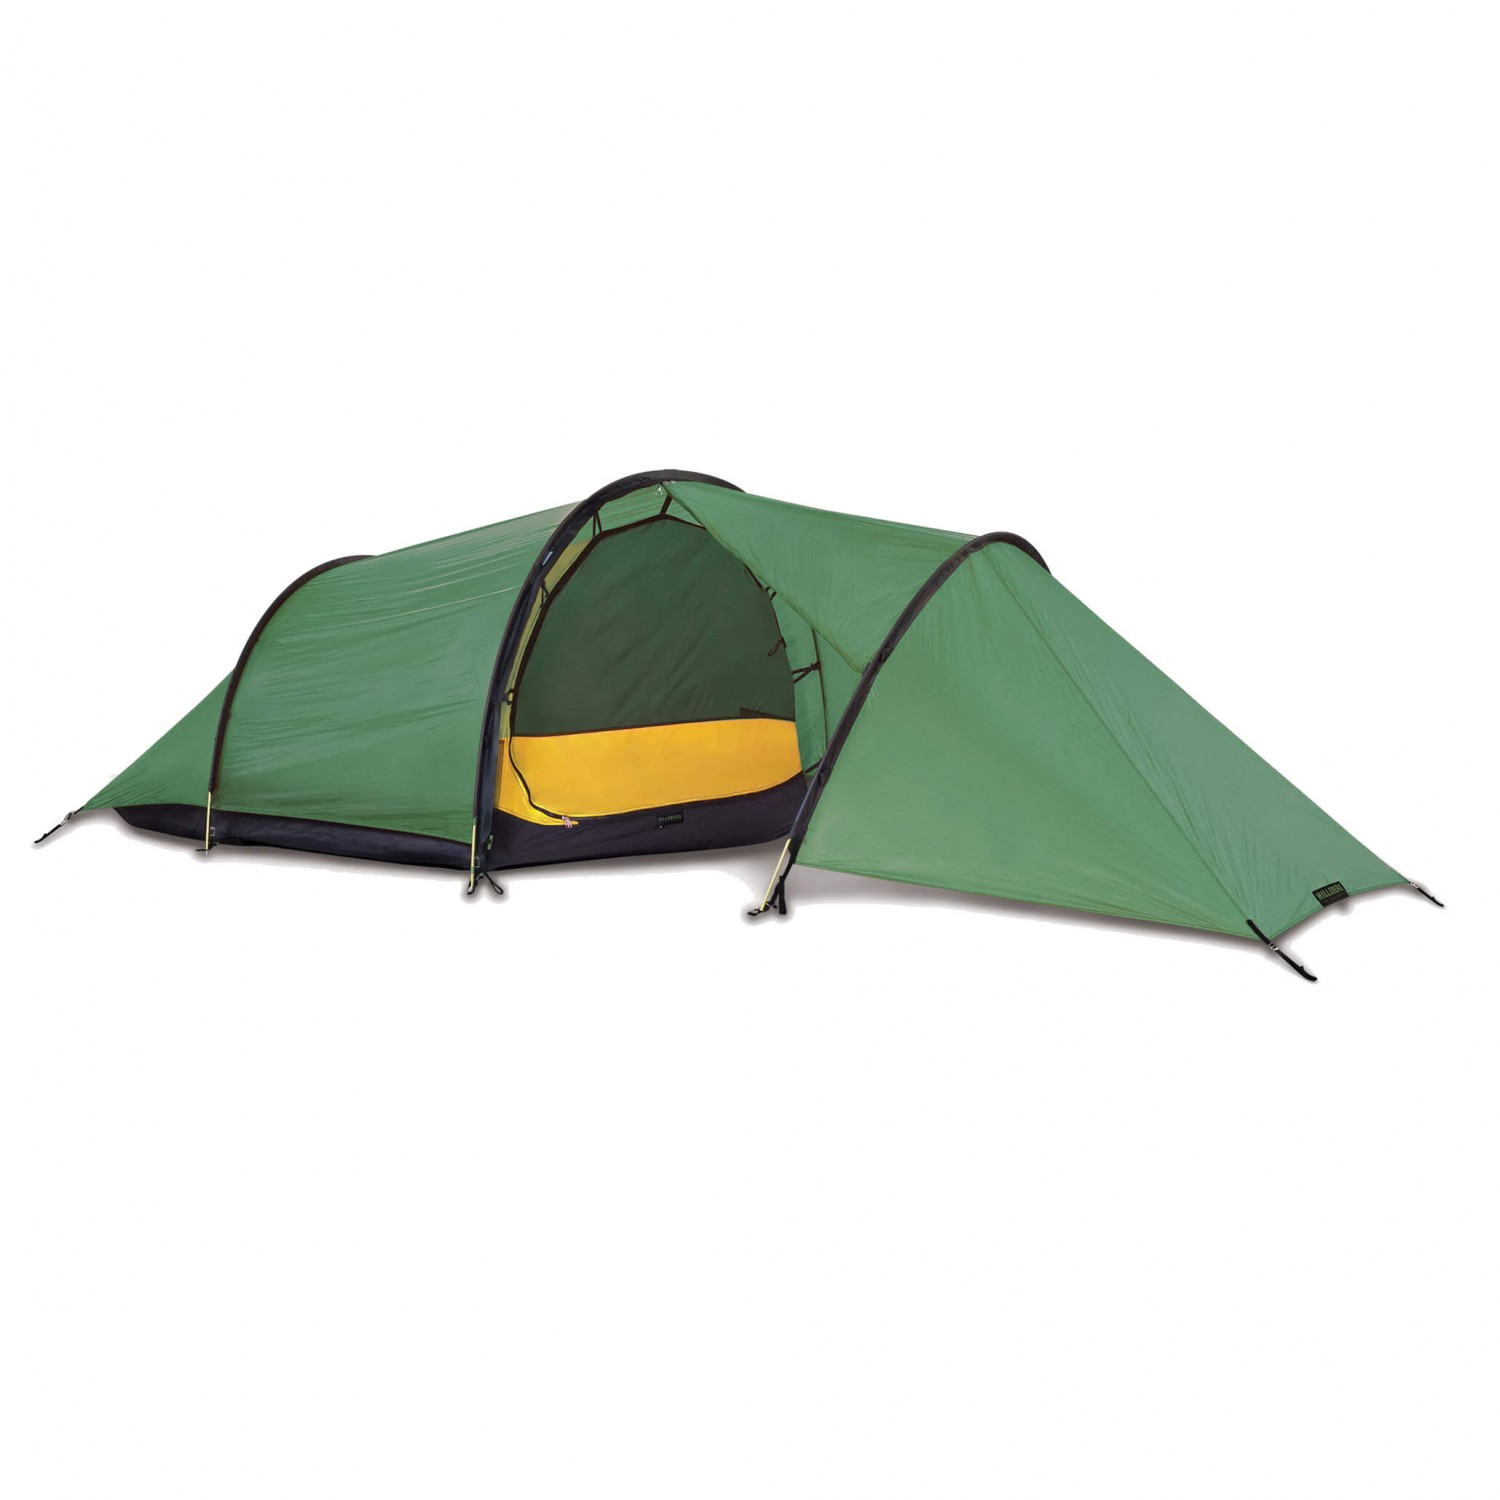 Two Person Tent : Hilleberg anjan gt person tent free uk delivery